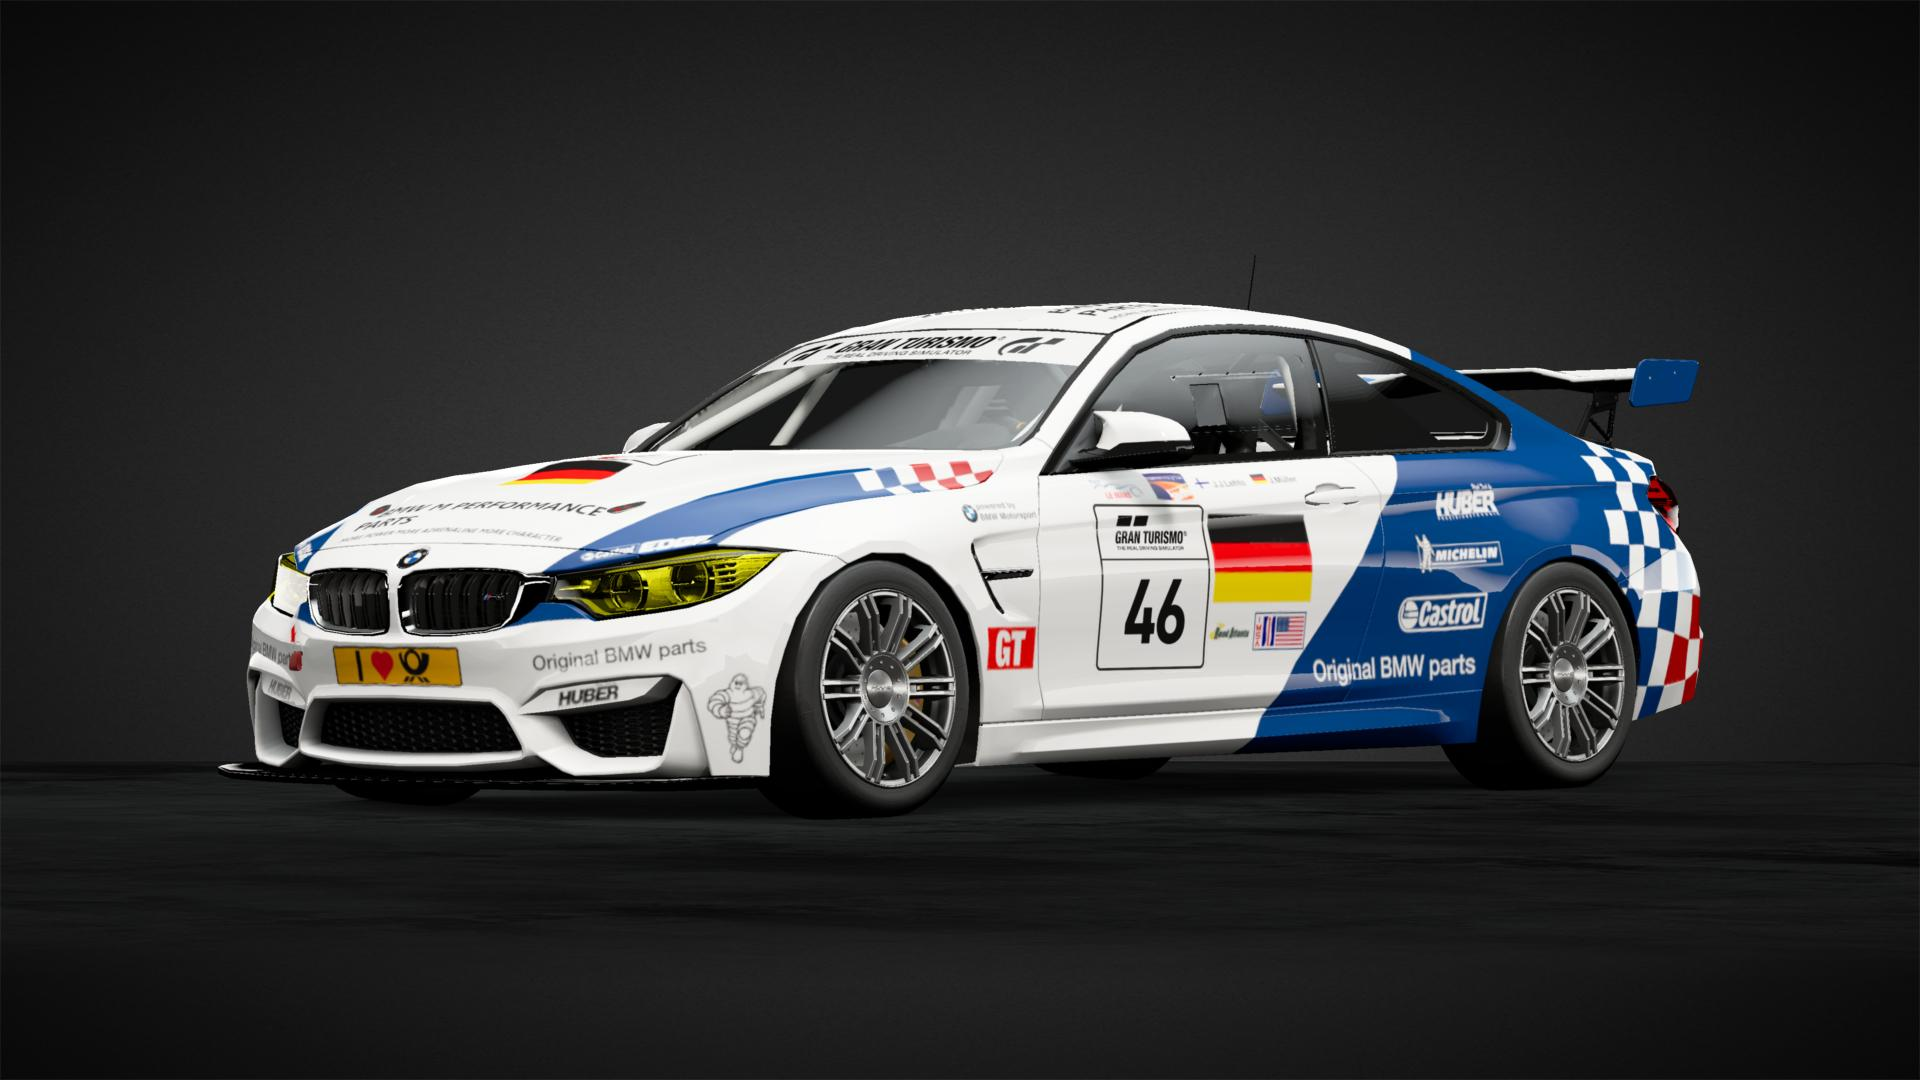 E46 M3 Gtr 01 Car Livery By Soulphat8 Community Gran Turismo Sport